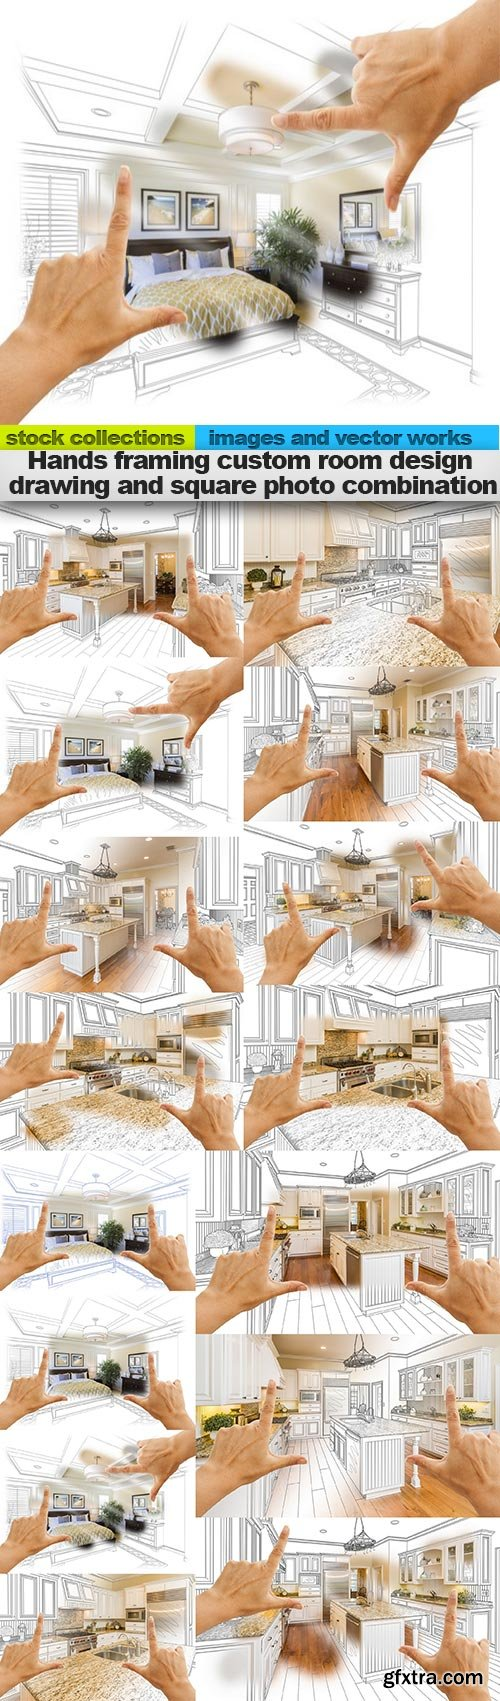 Hands framing custom room design drawing and square photo combination, 15 x UHQ JPEG